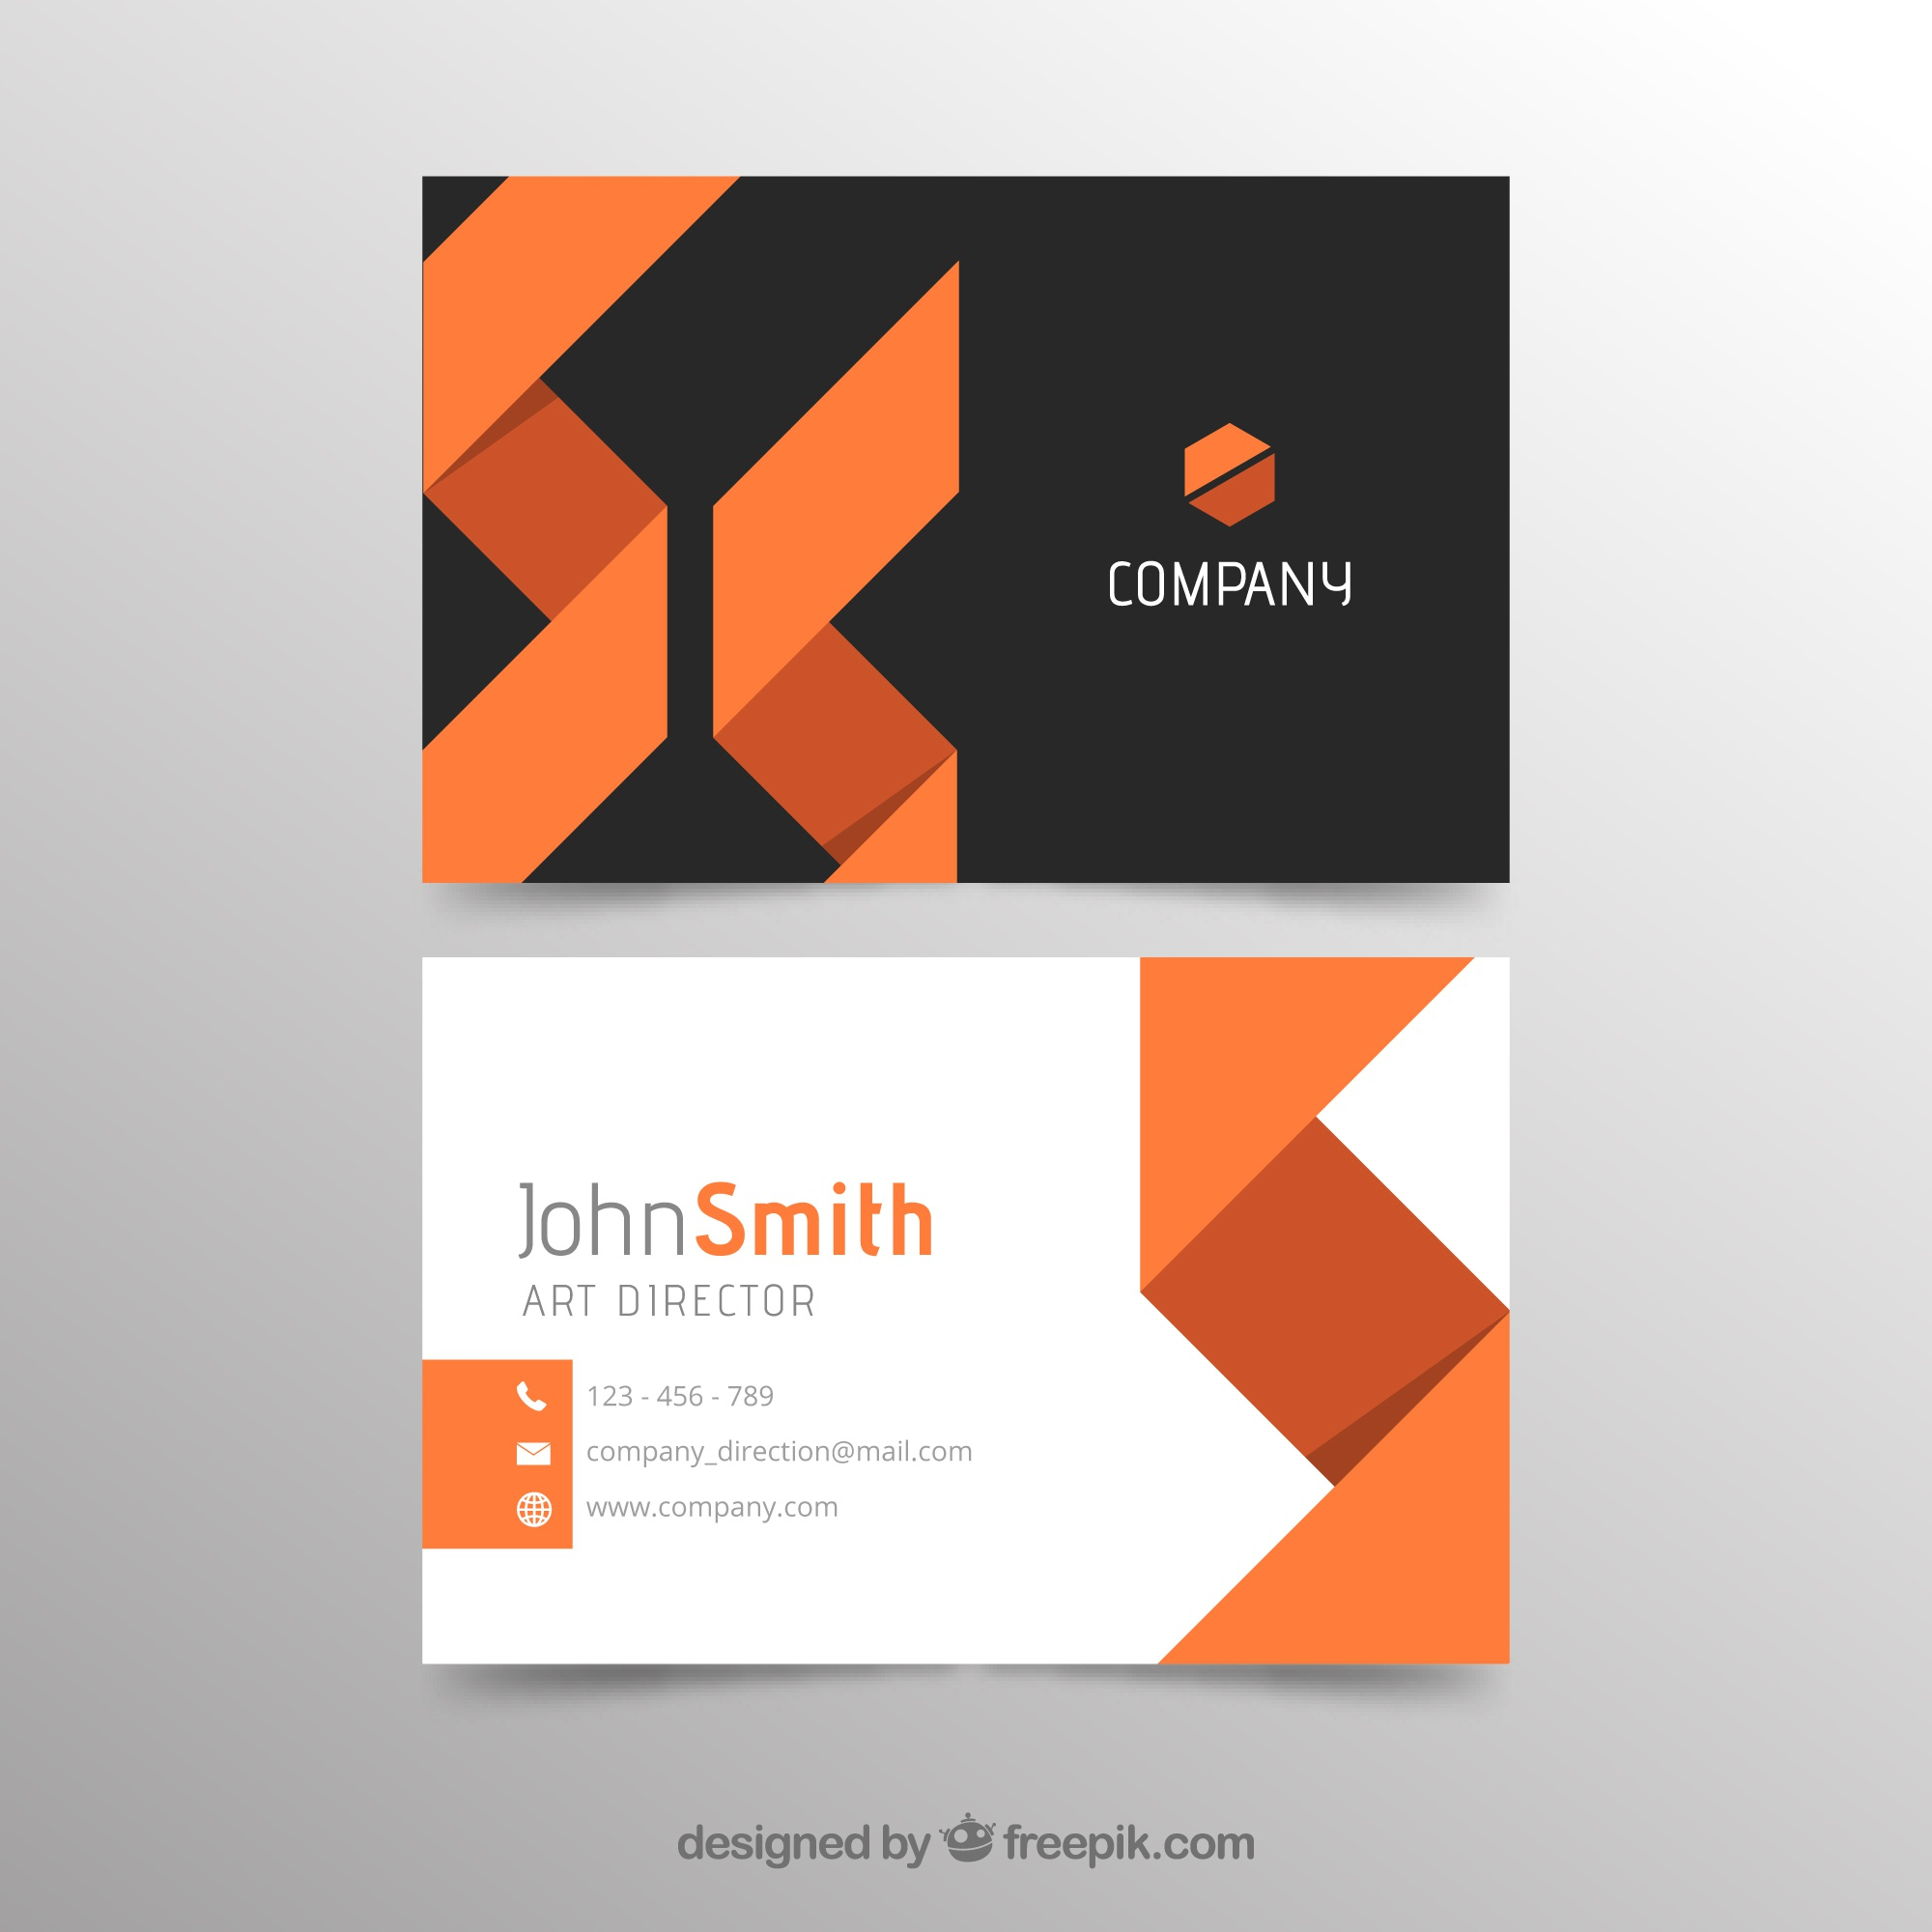 Abstract orange and black business card template